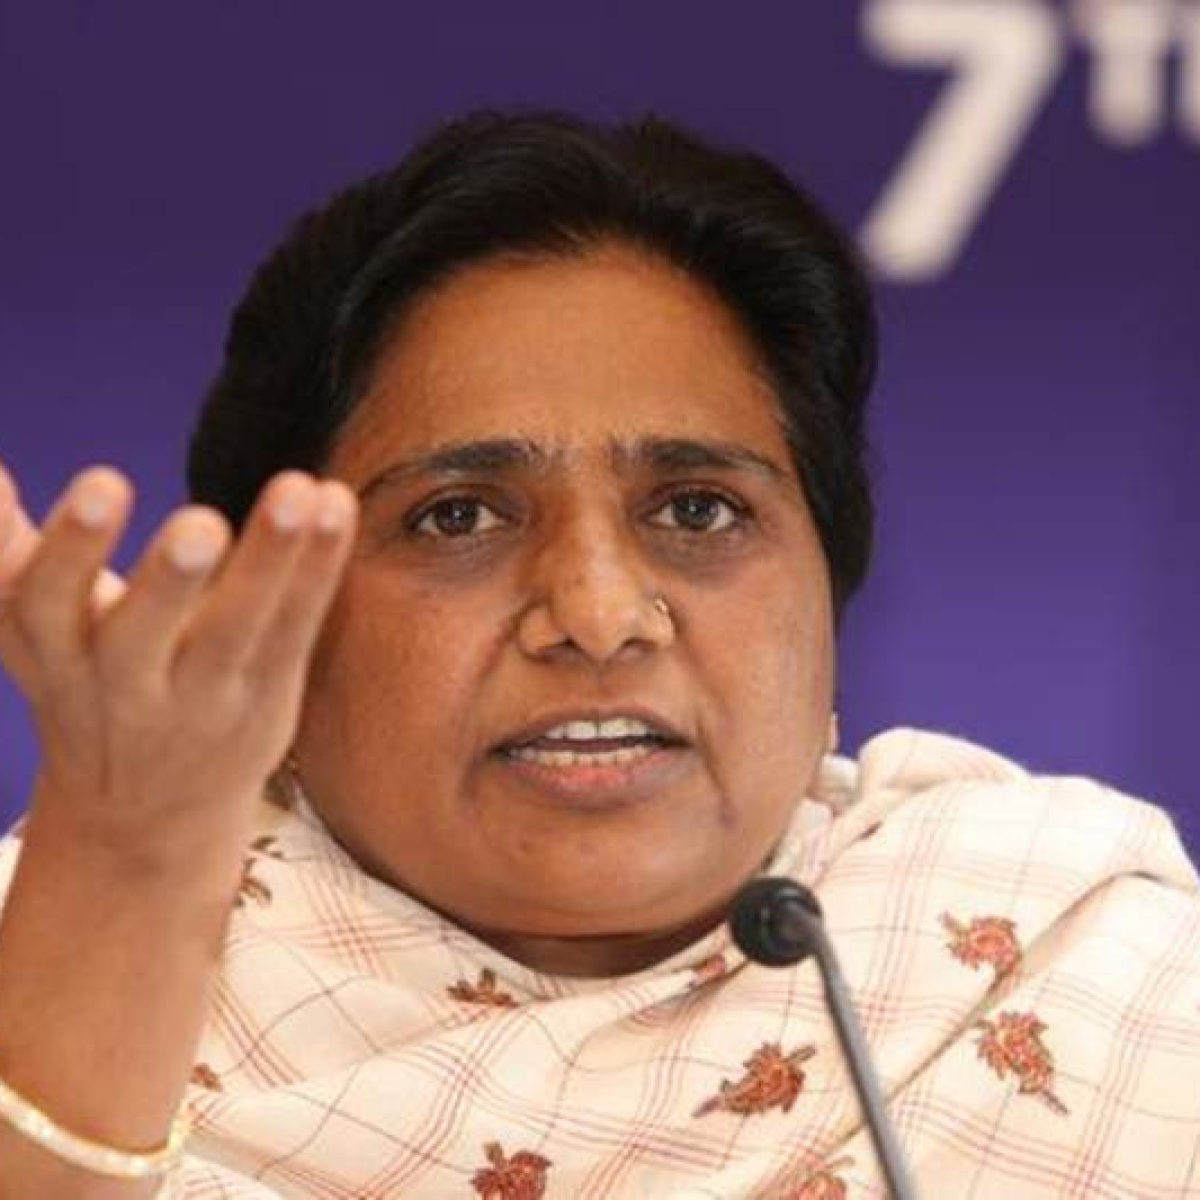 Don't put Brahmin community in the dock over crimes of one person: Mayawati